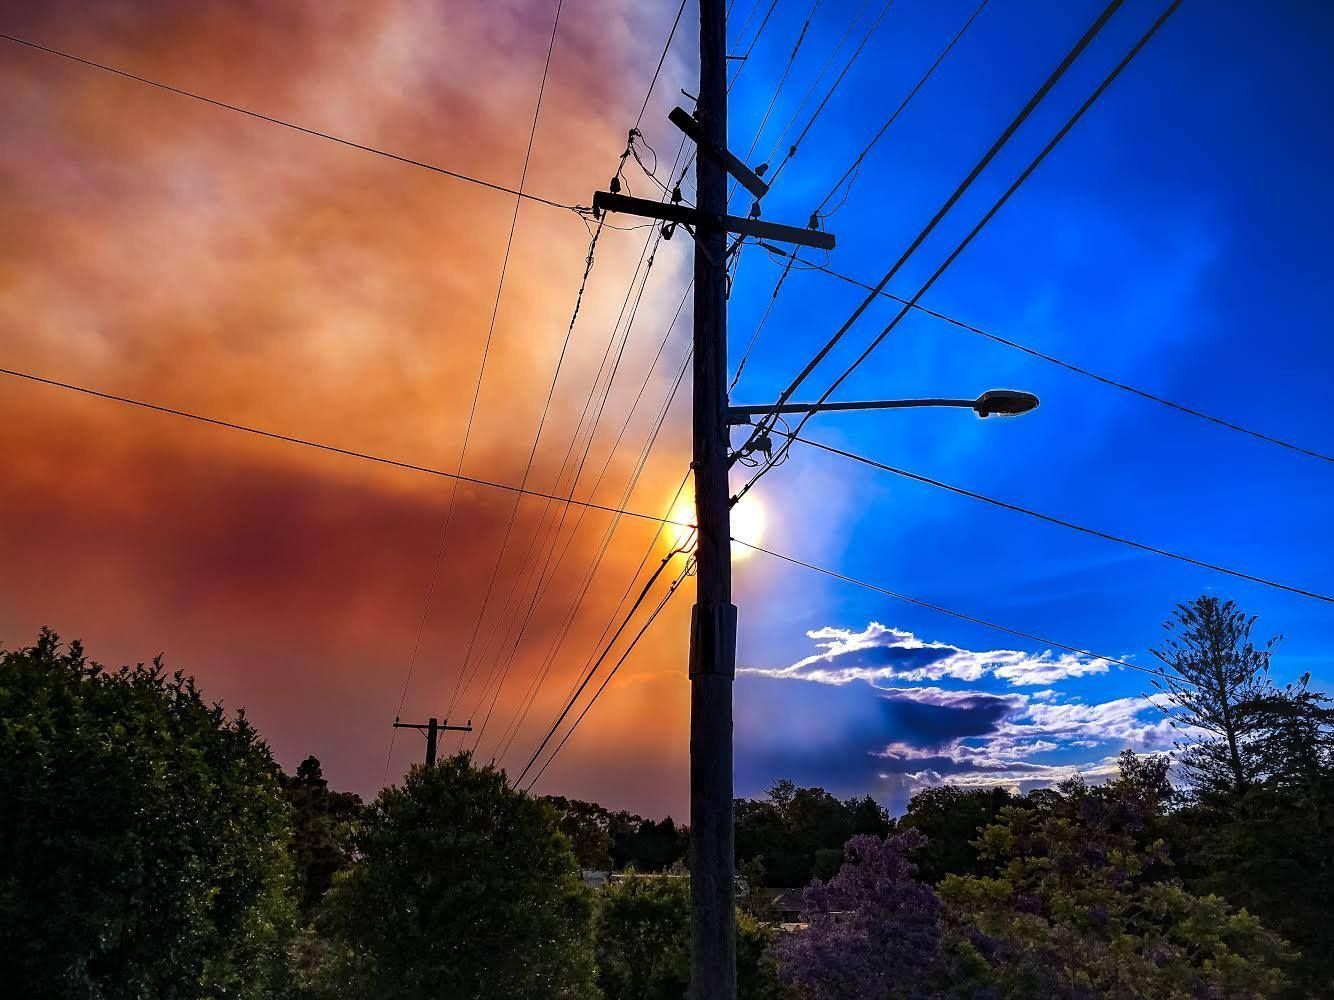 Caught the smoke as it was spreading over our suburb in